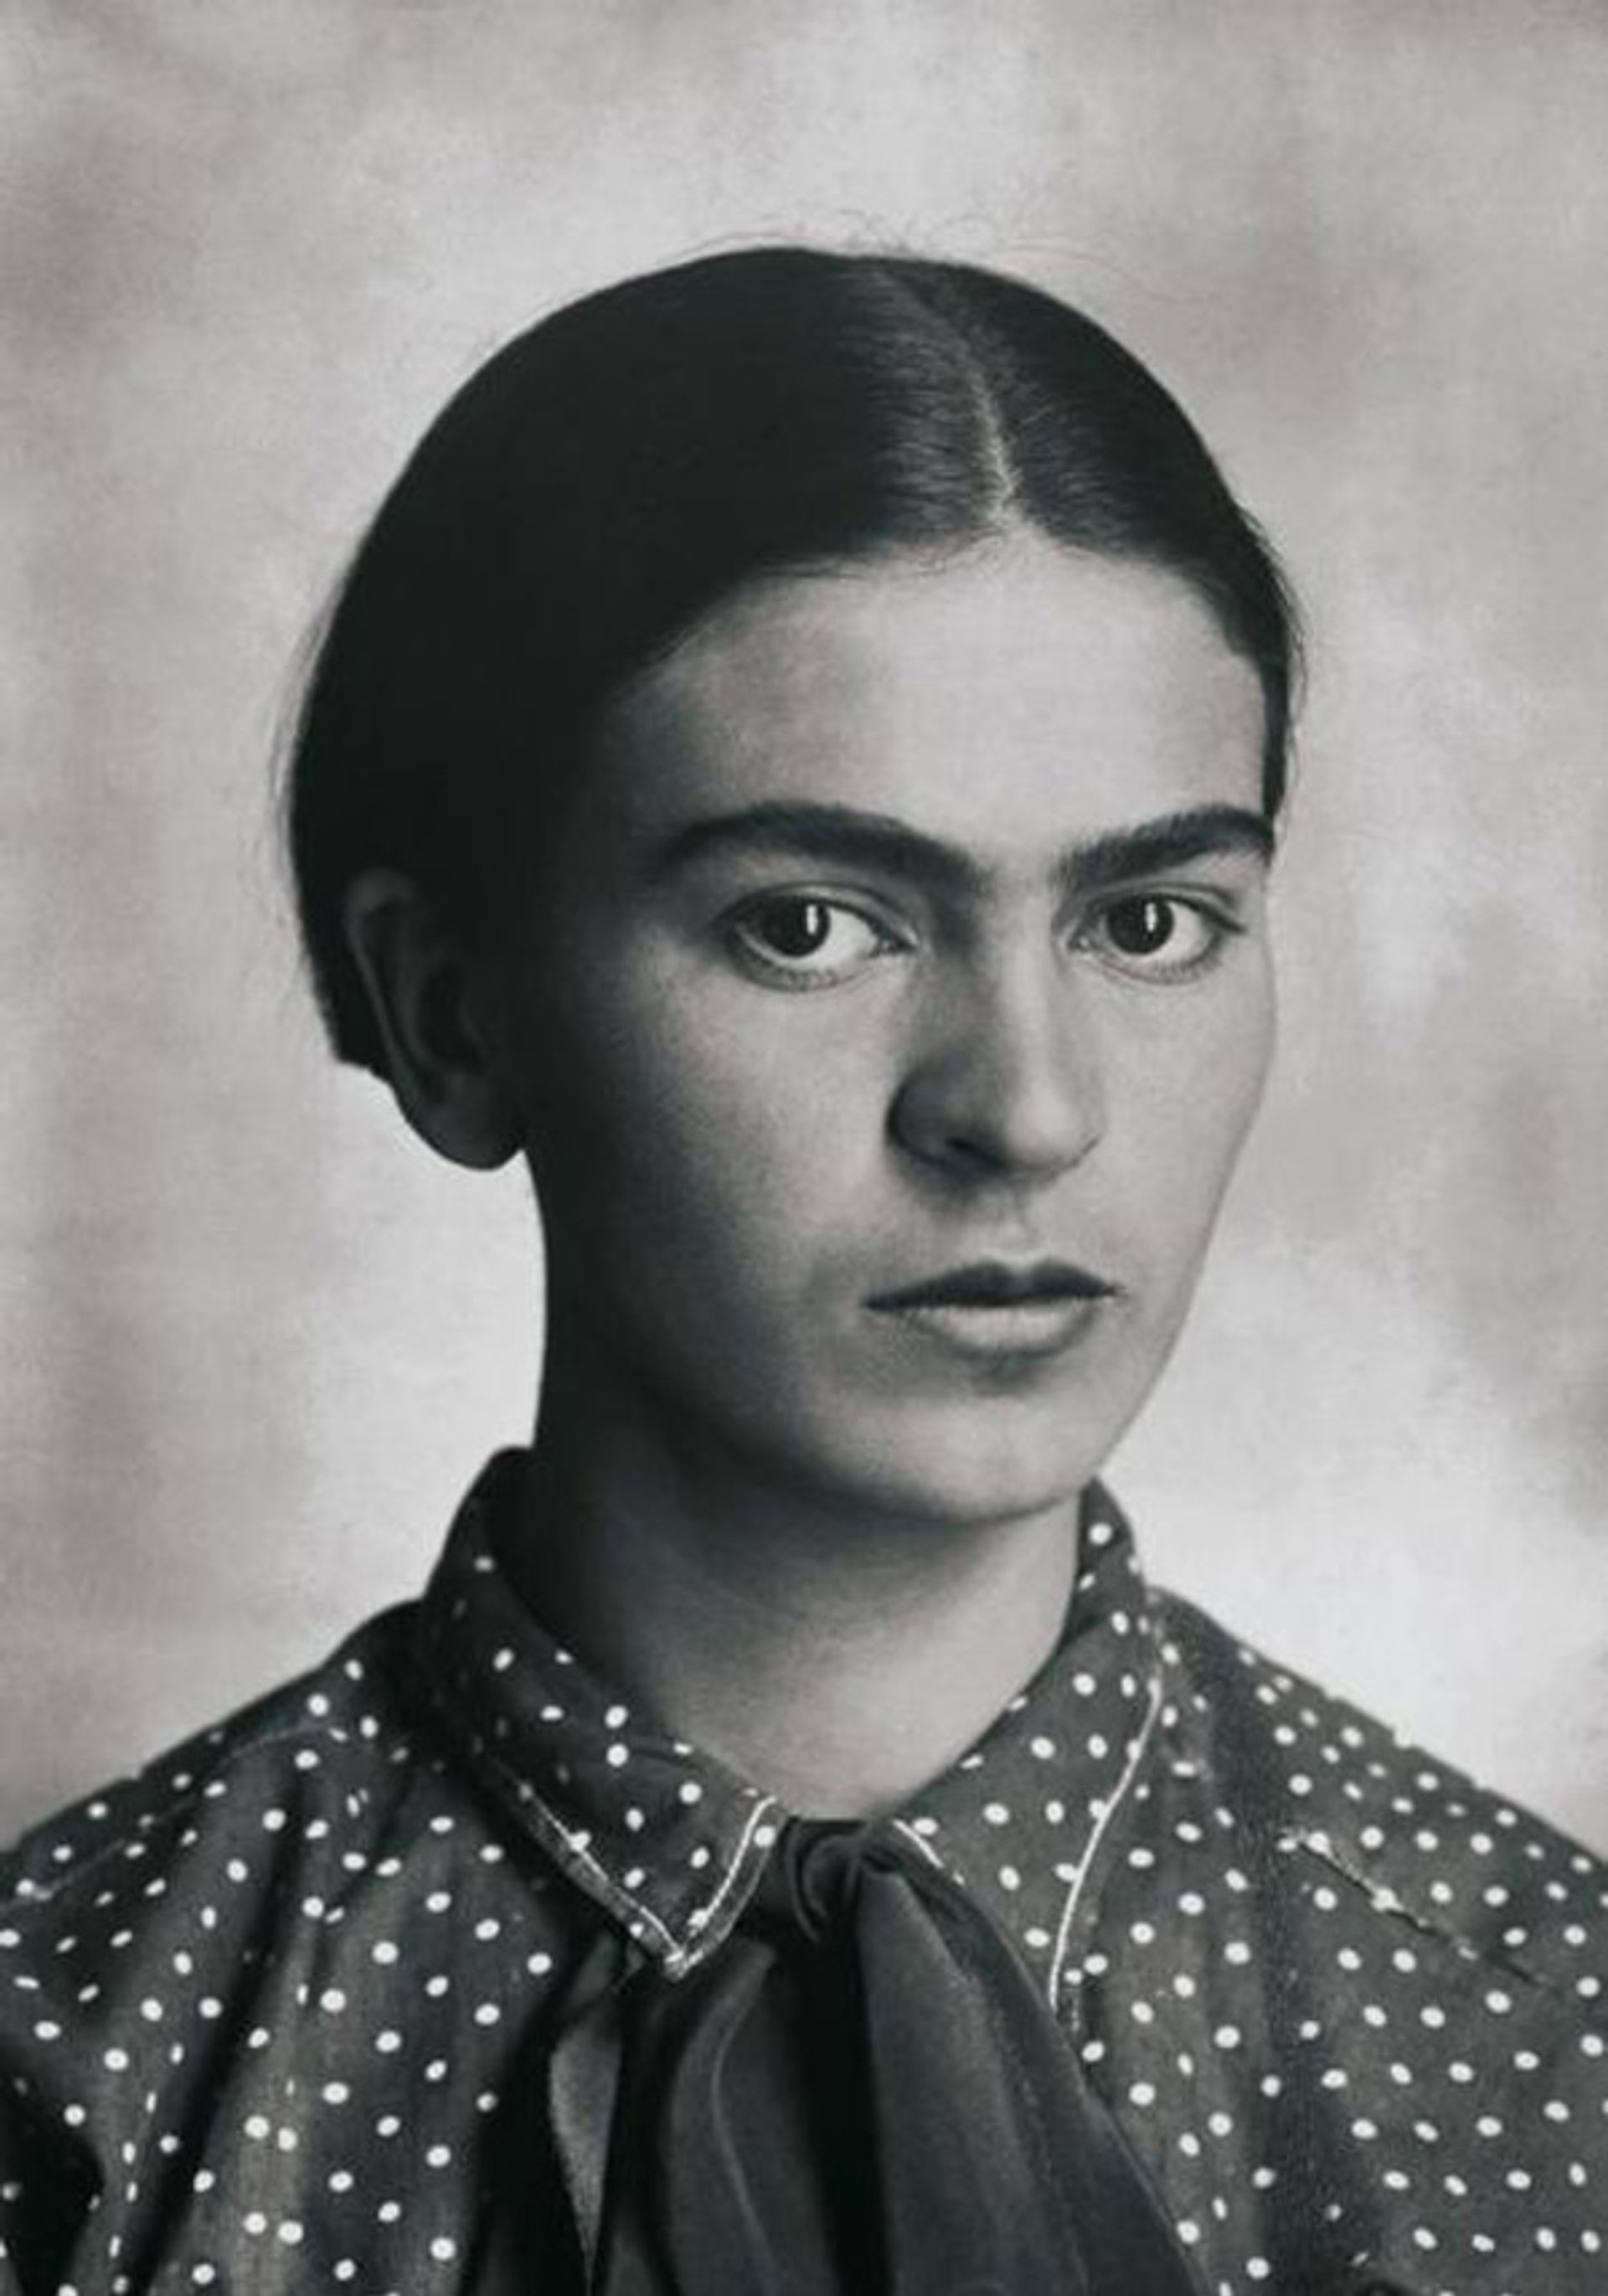 Frida Kahlo photographed by Guillermo Kahlo in 1926